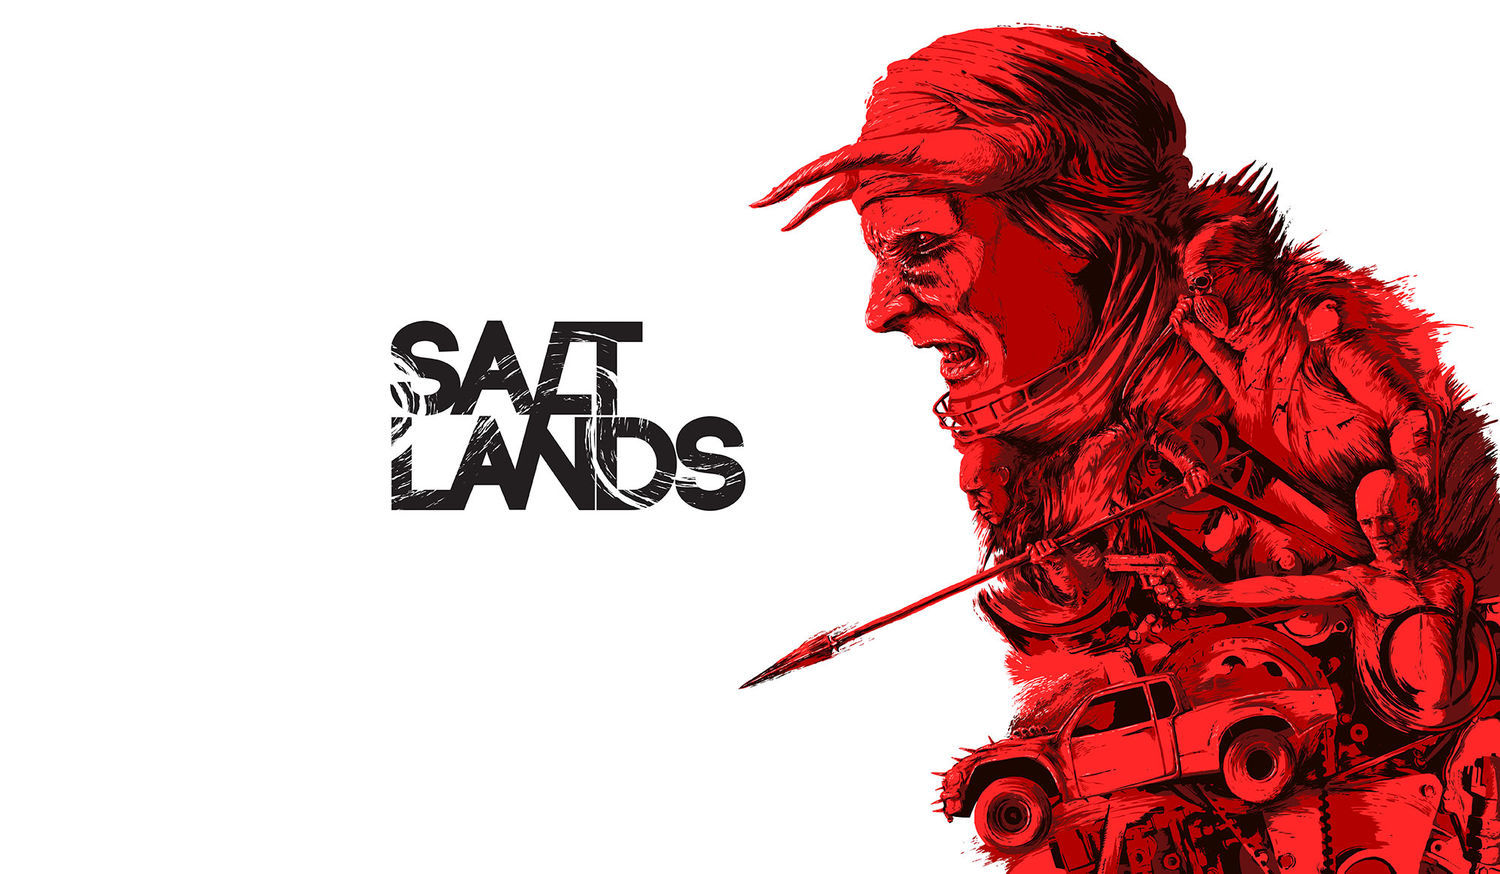 Saltlands the board game - 1 by Lossonczy Bazsó